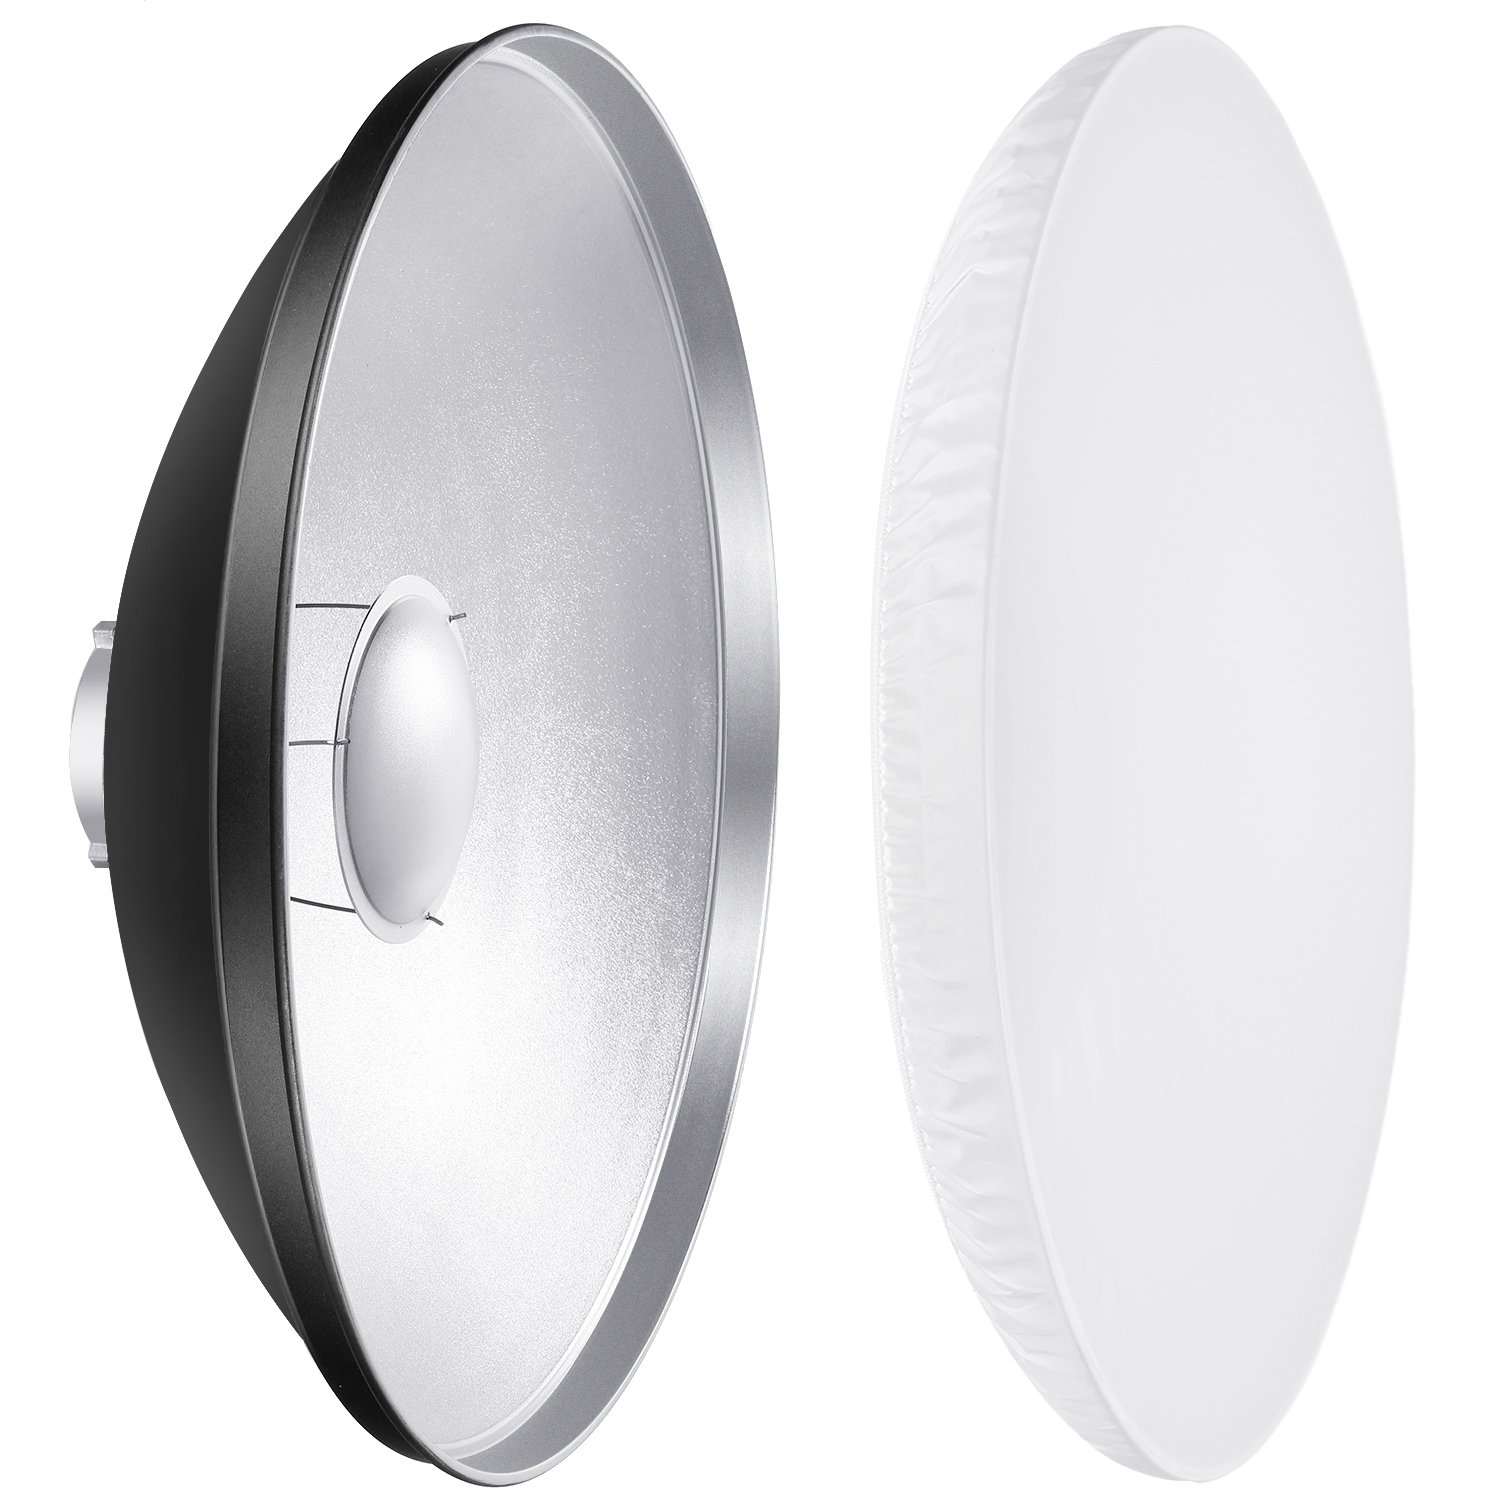 Neewer 16 inches/41 Centimeters Aluminum Standard Reflector Beauty Dish with White Diffuser Sock for Bowens Mount Studio Strobe Flash Light Like Neewer Vision 4 VC-400HS VC-300HH VC-300HHLR VE-300 10089551